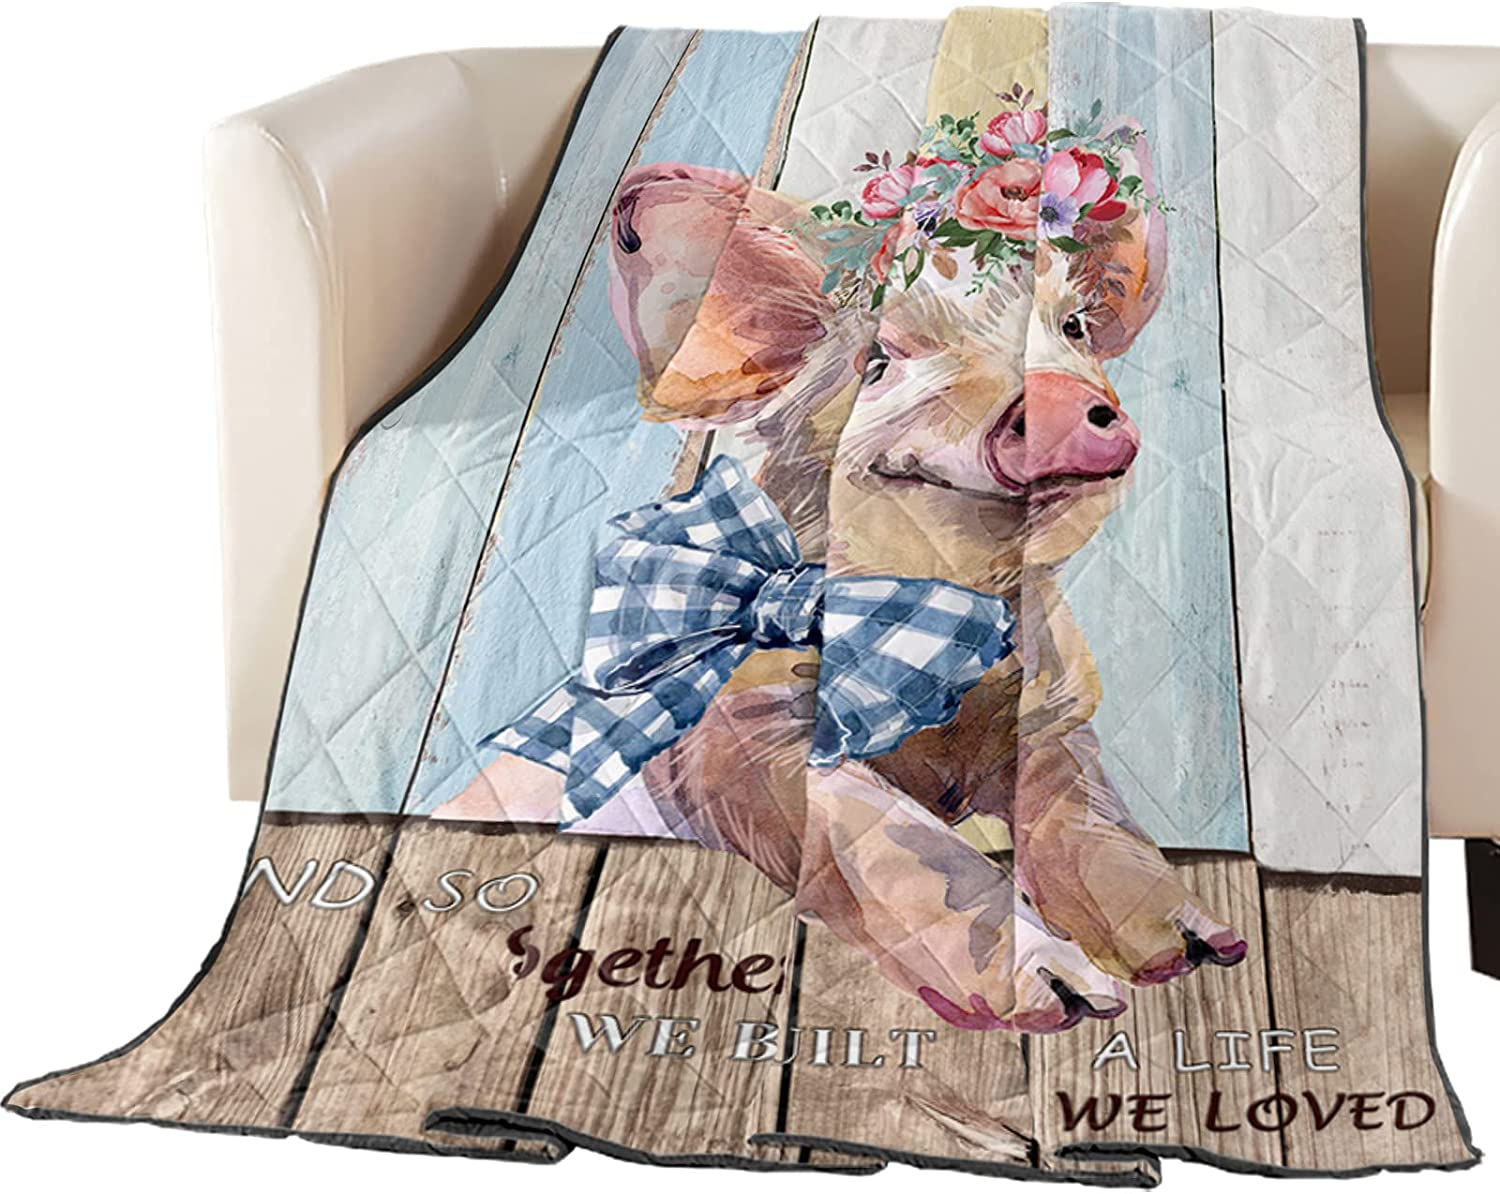 Thin Dallas Mall Comforter Bedspread Throw Blanket Flor Farm Cute Limited time trial price Animal Pig